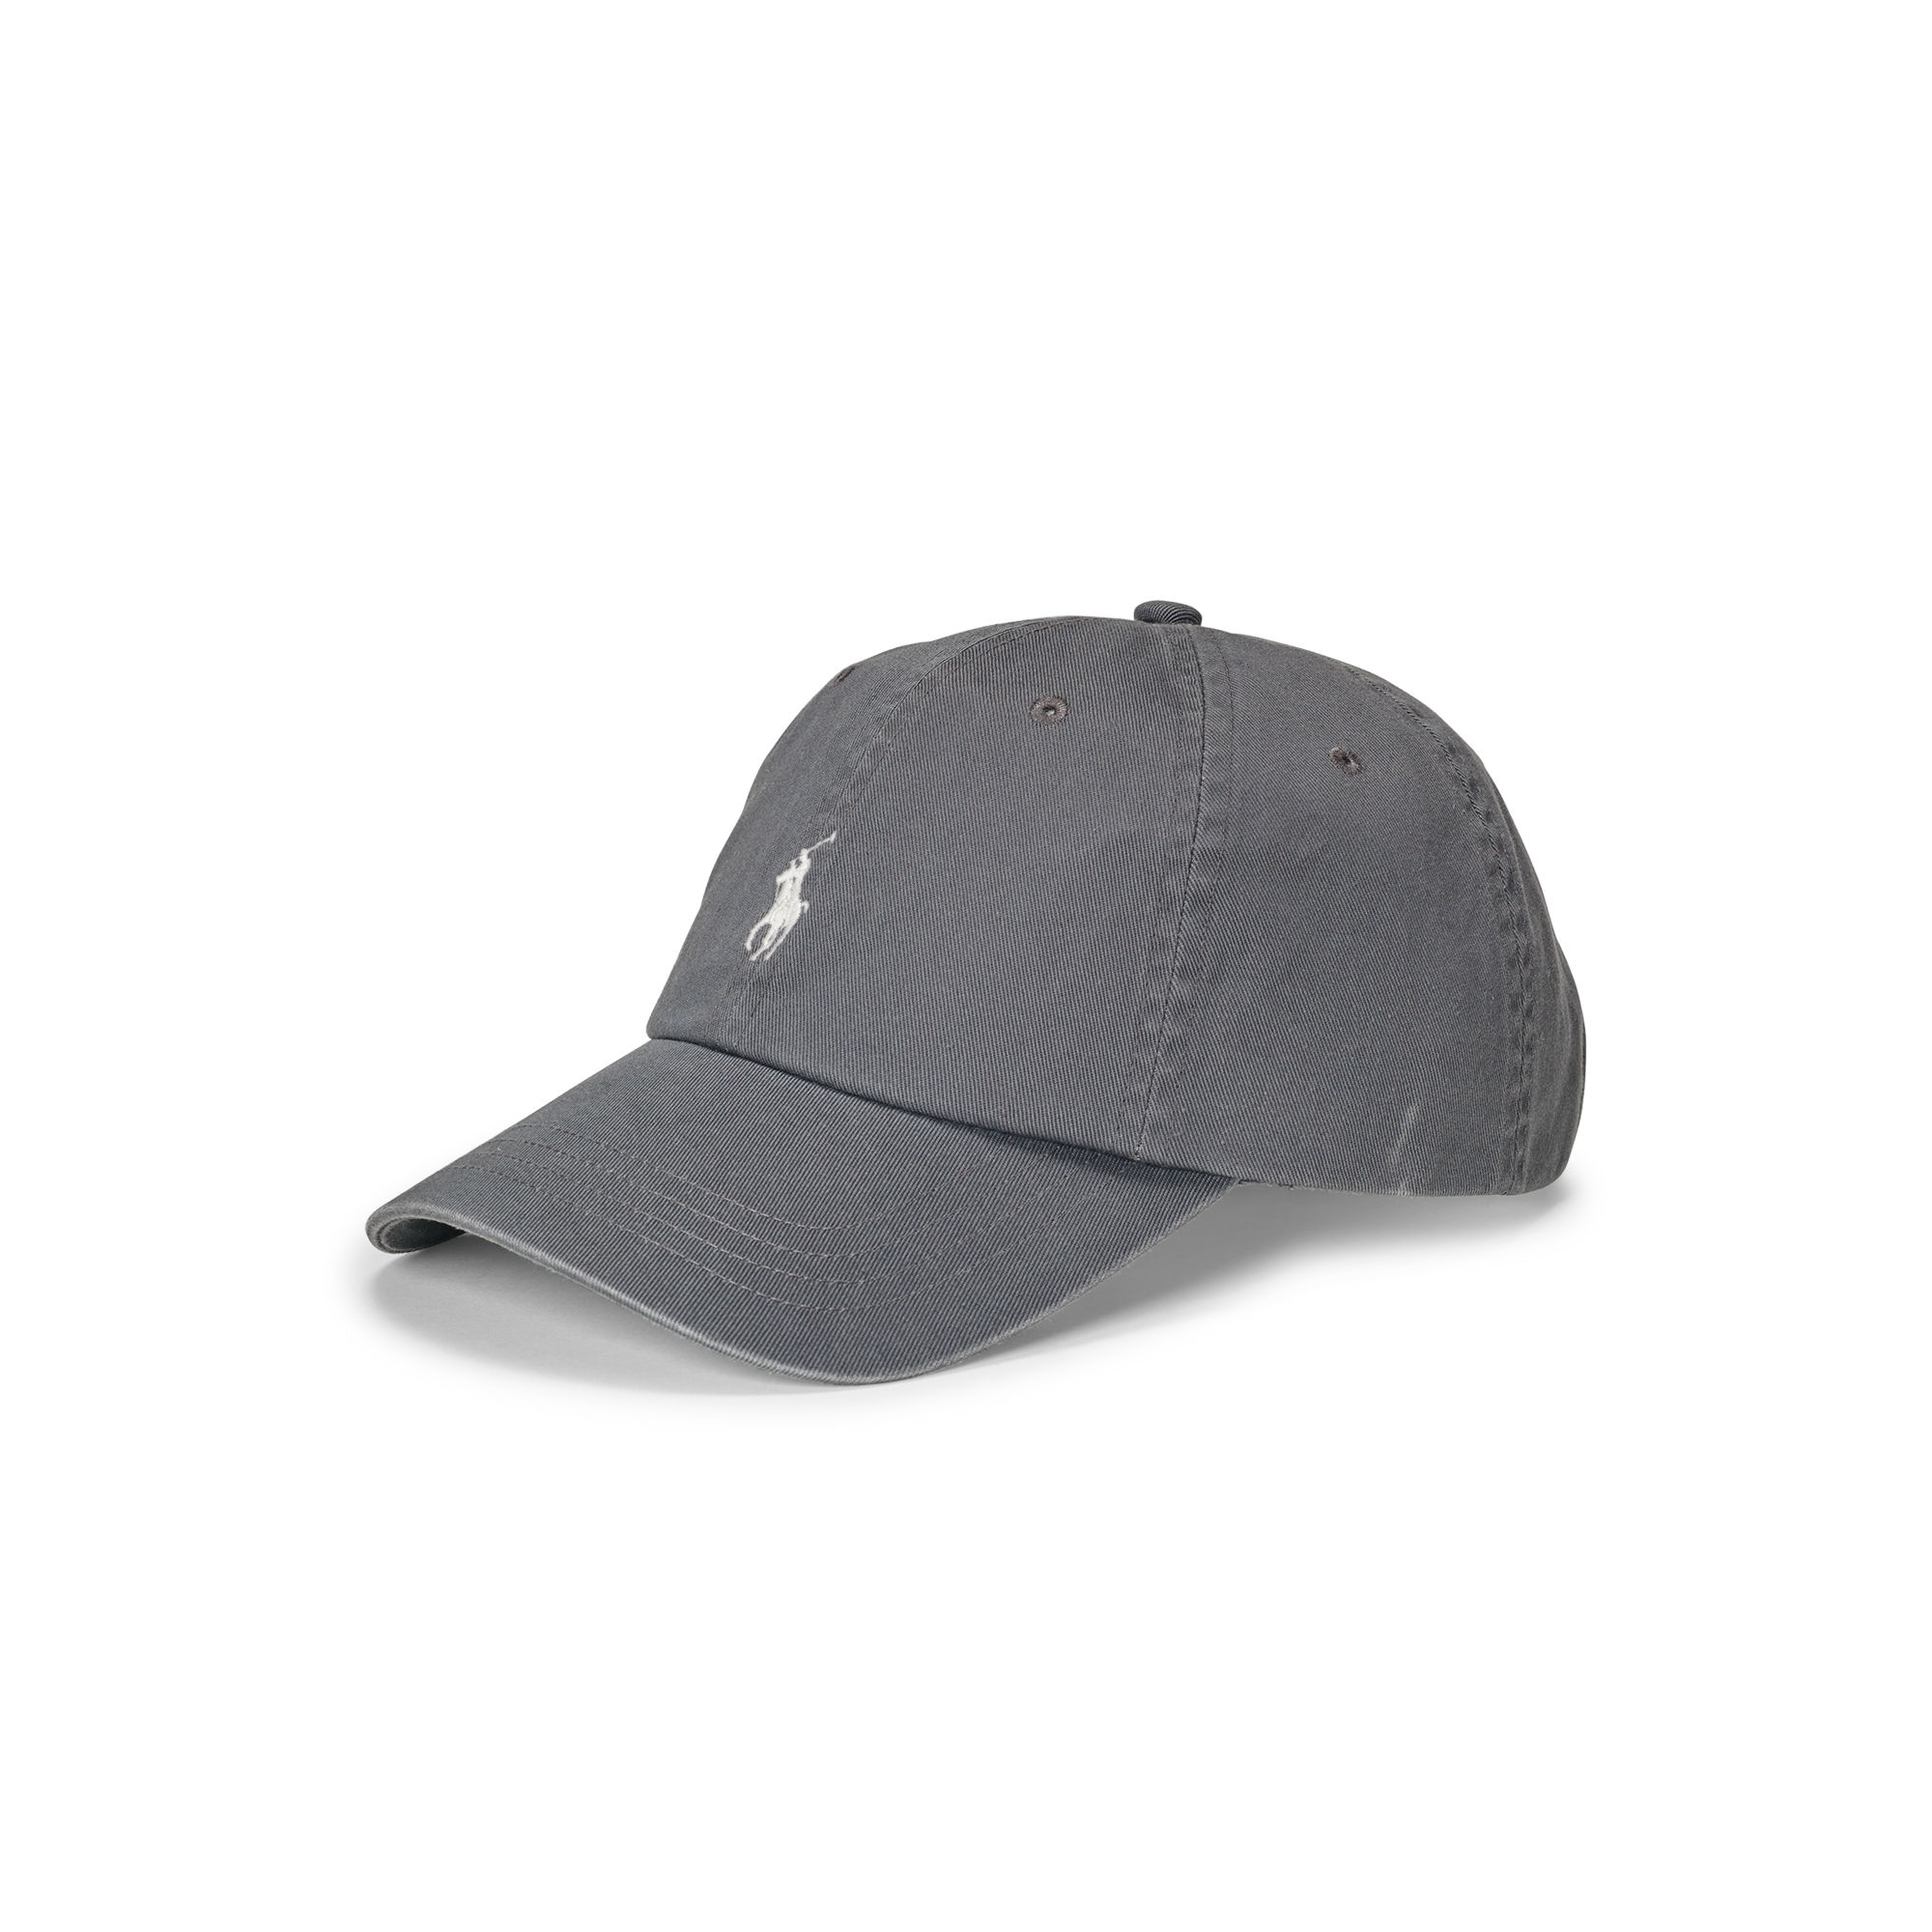 polo ralph lauren cotton chino baseball cap in gray for. Black Bedroom Furniture Sets. Home Design Ideas